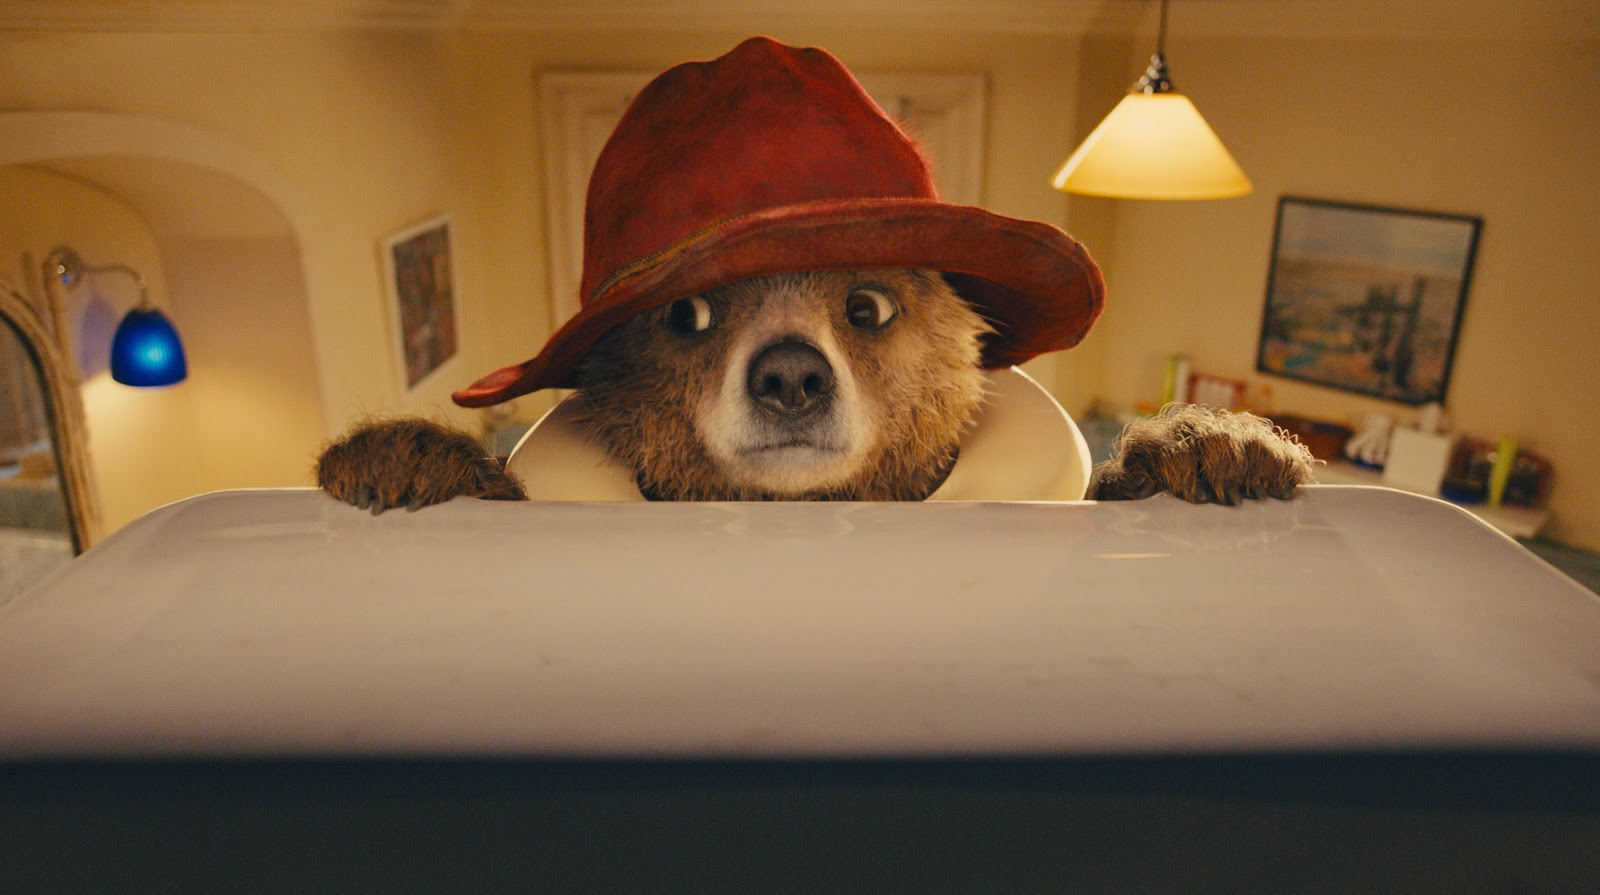 PADDINGTON Bear coming to theaters on Christmas Day #PaddingtonMovie